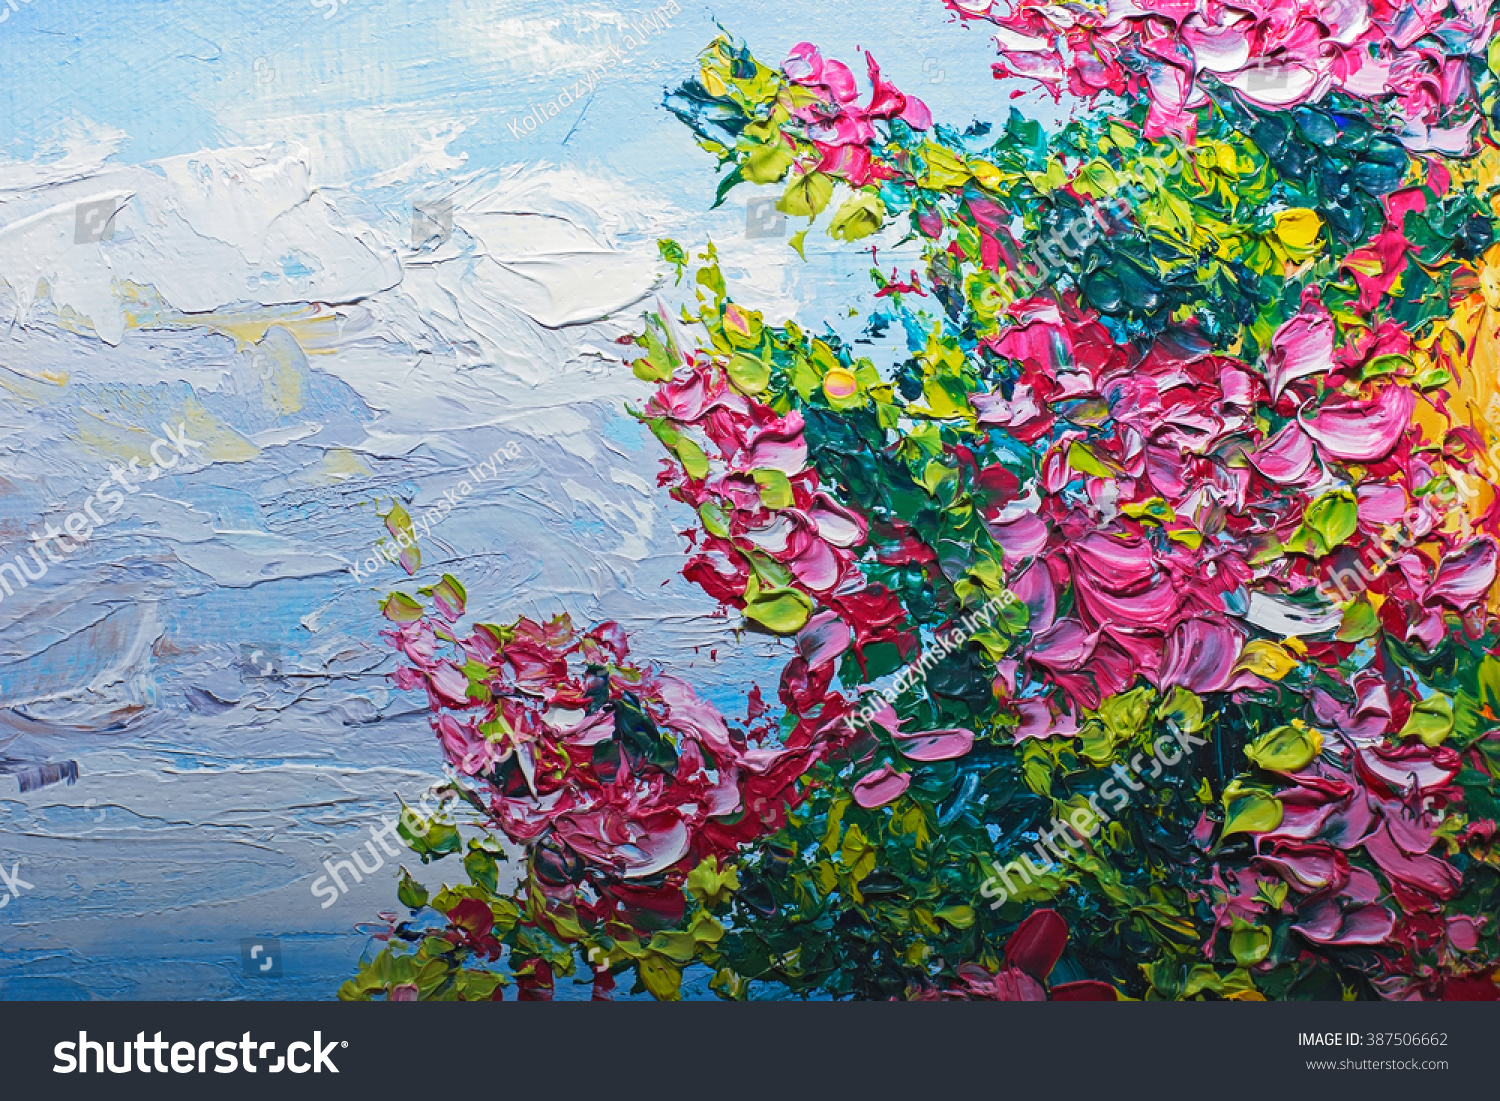 Texture Oil Painting Flowers Art Painted 387506662